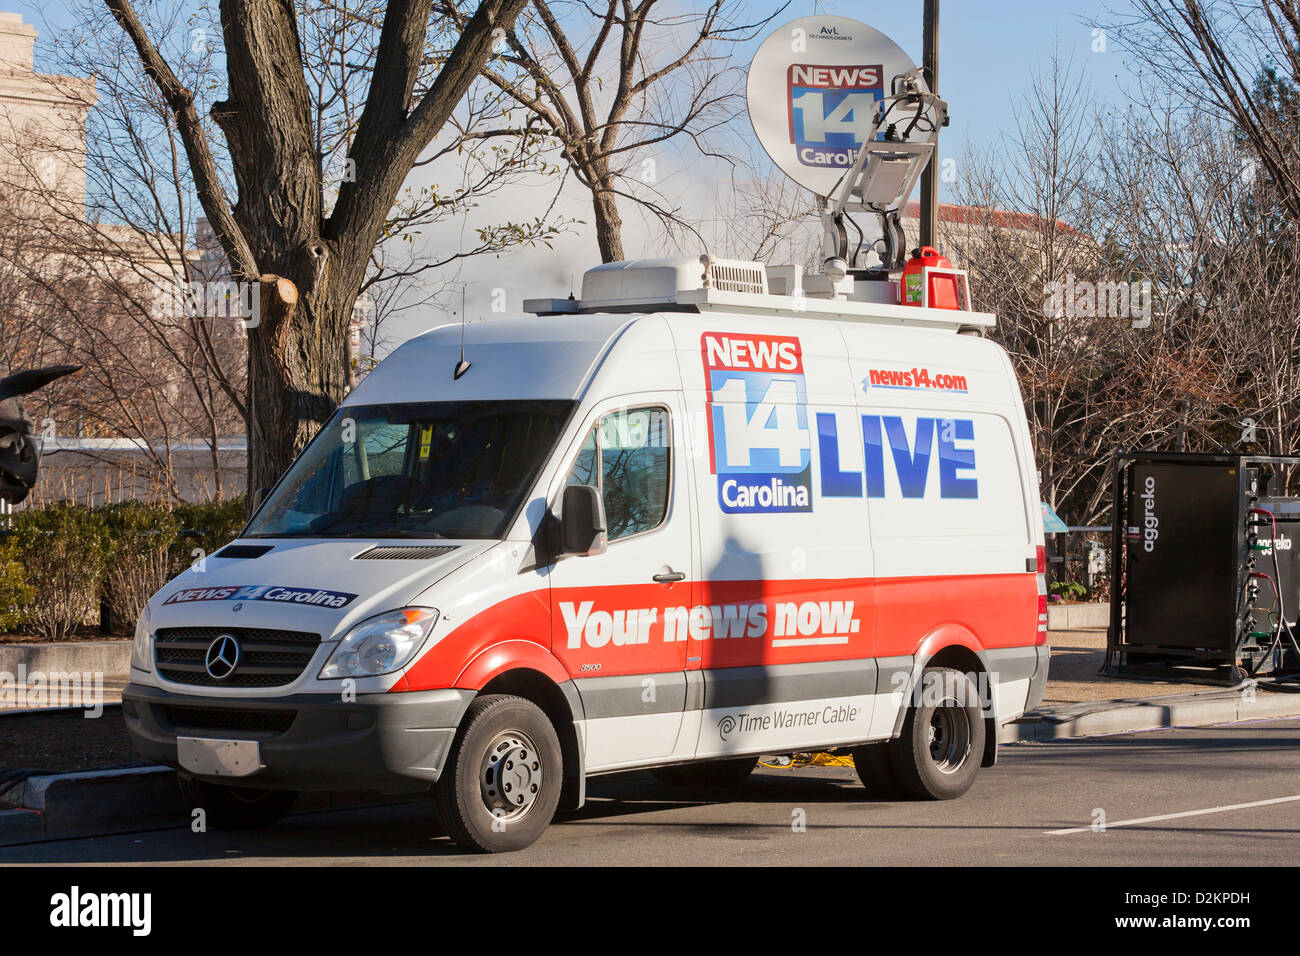 Usa News Live >> Live News Tv Satellite Truck Usa Stock Photo 53295133 Alamy